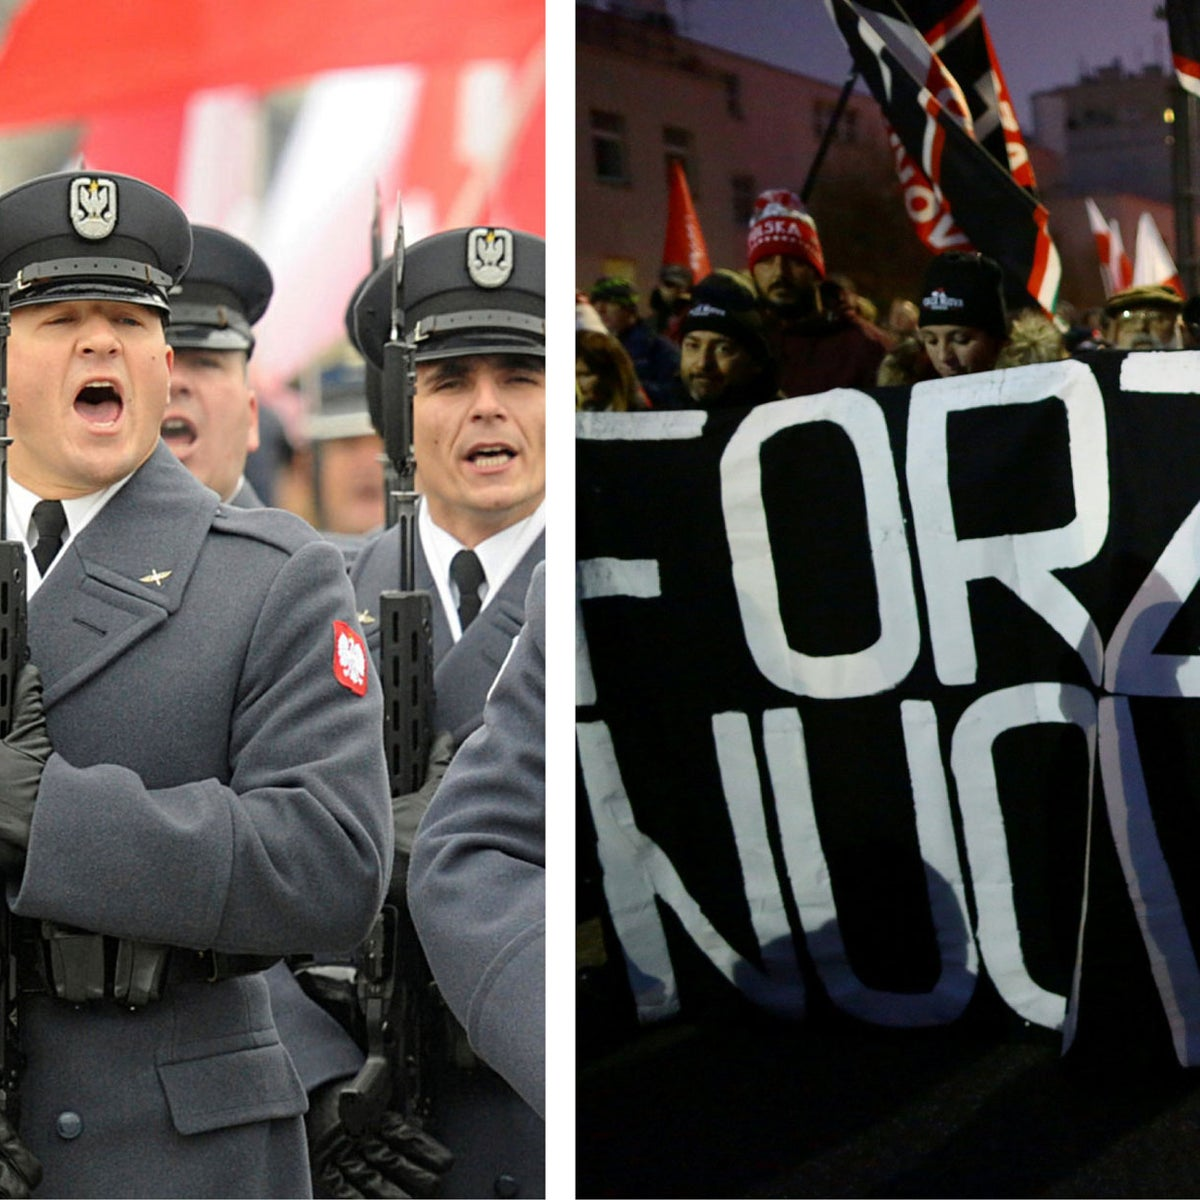 Polish Army soldiers salute during the official ceremony marking Poland's Independence Day, in Warsaw, Poland, Sunday, Nov. 11, 2018. / People carry banner of Italian far-right party Forza Nuova.